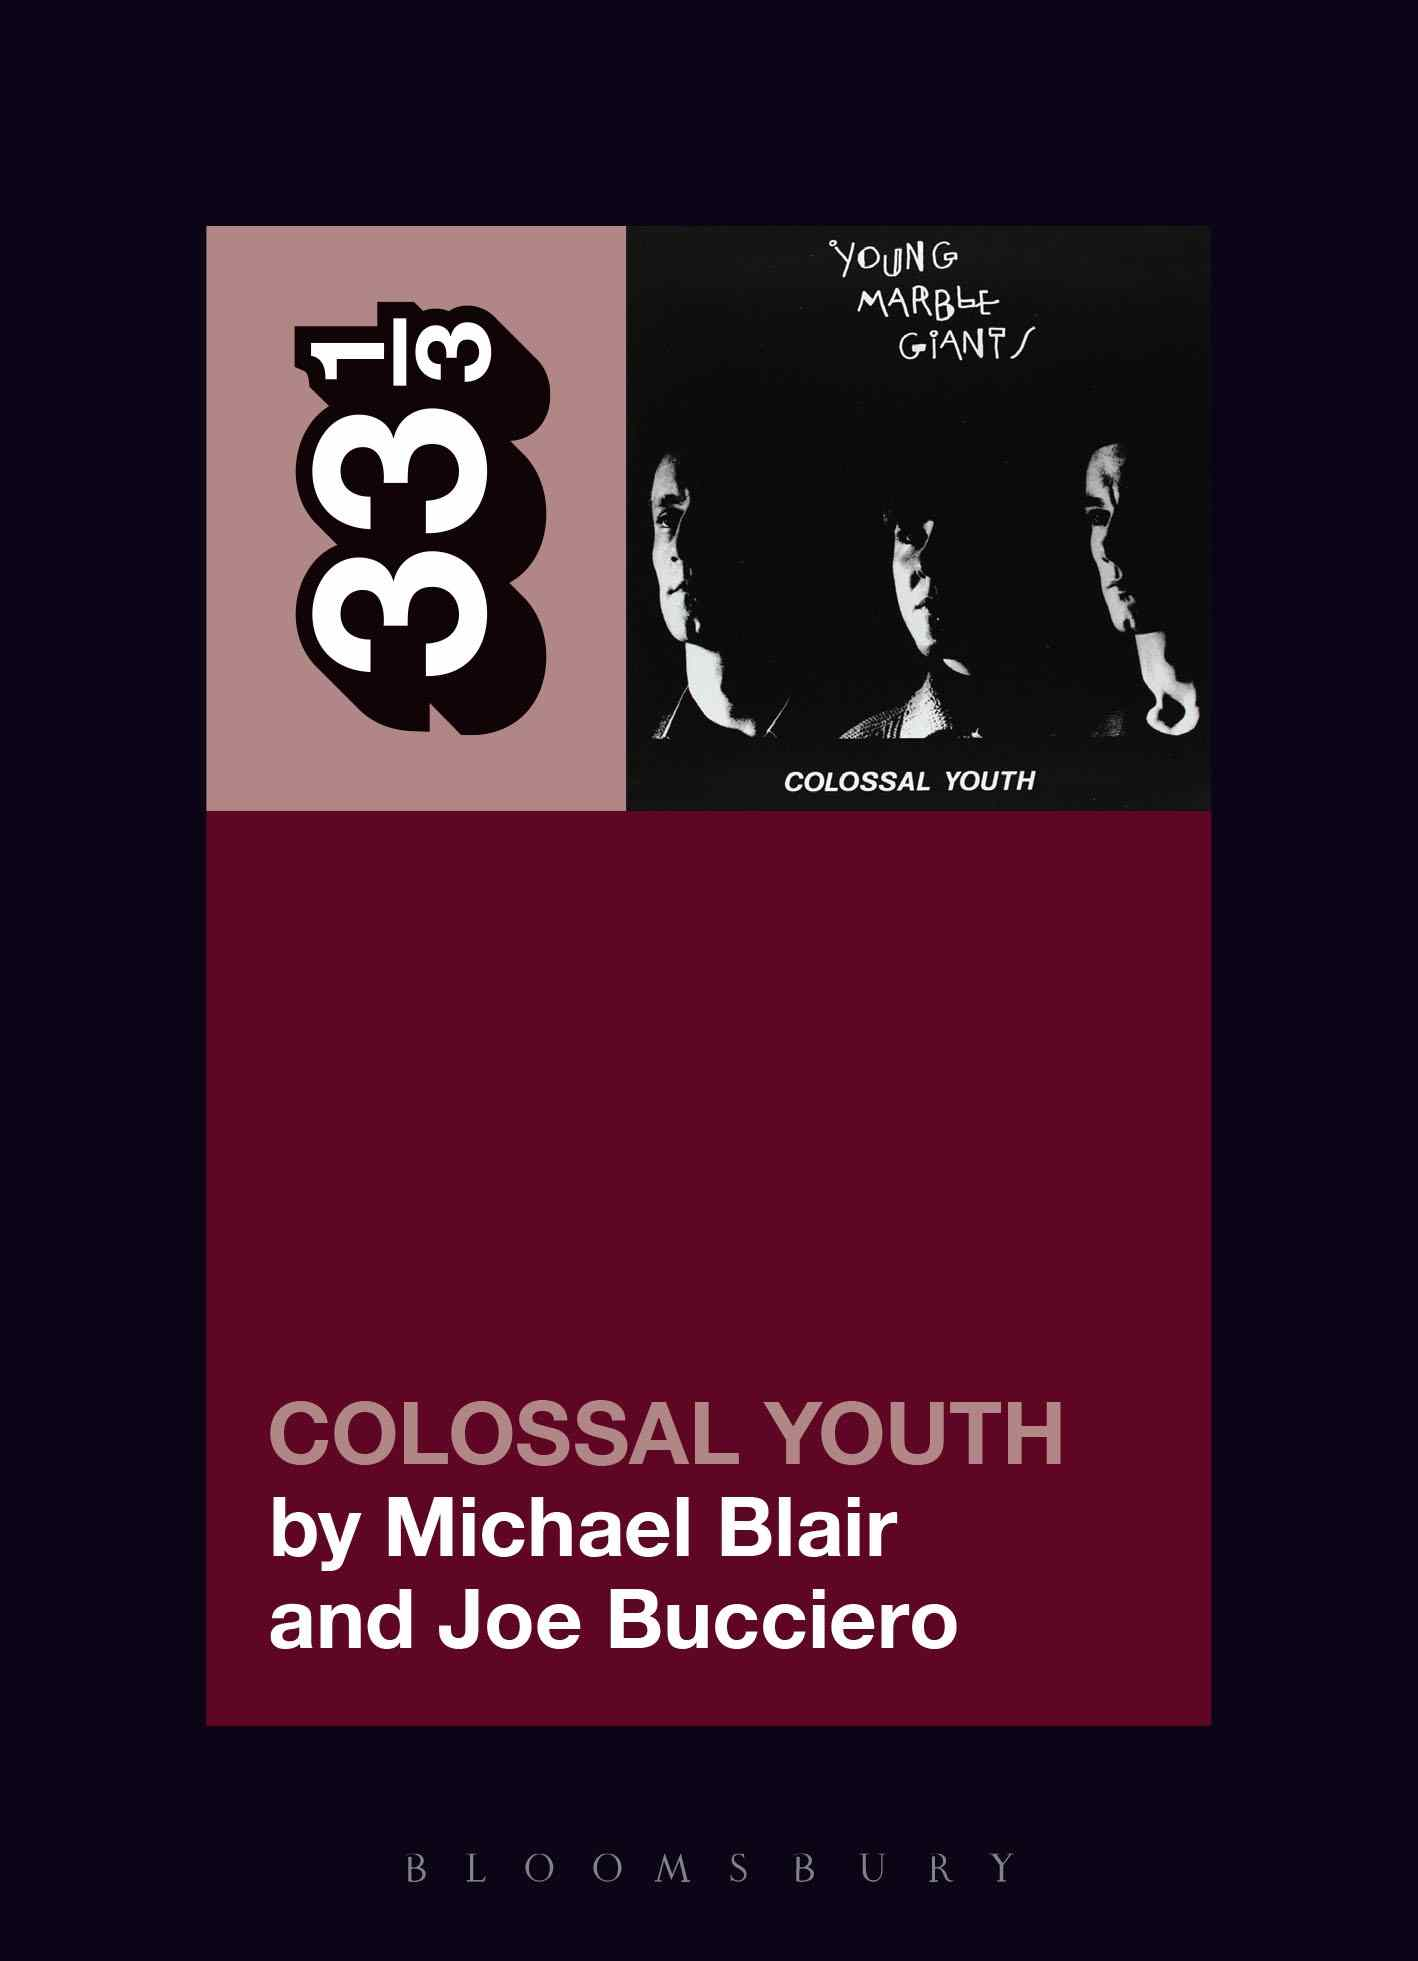 Young Marble Giants' Colossal Youth